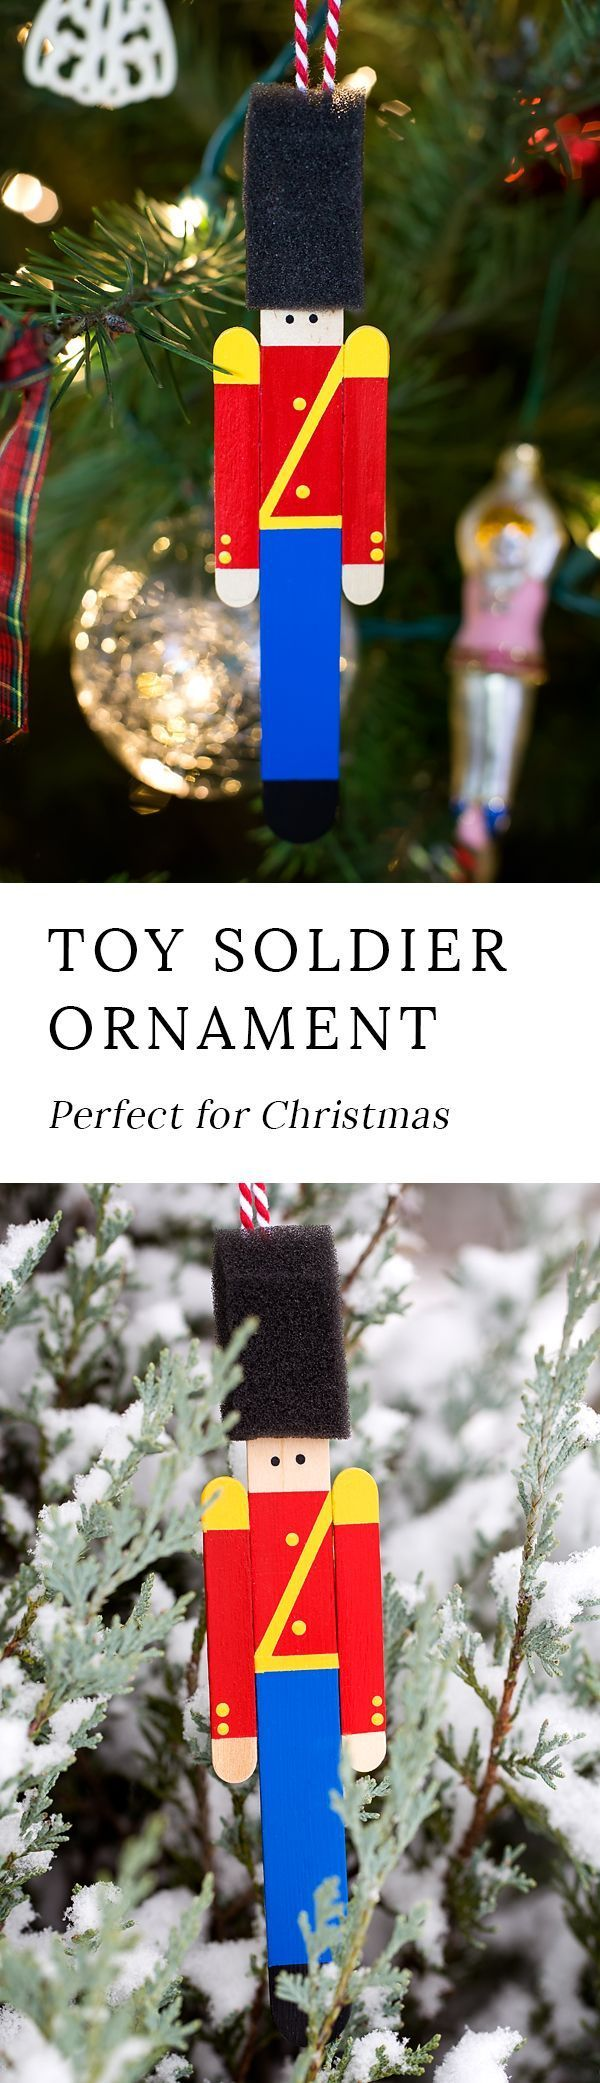 Crafters big and small will delight in making Wooden Toy Soldier Ornaments with craft sticks, paint, and one extra unique craft material. #christmas #KidsCrafts #christmasornaments